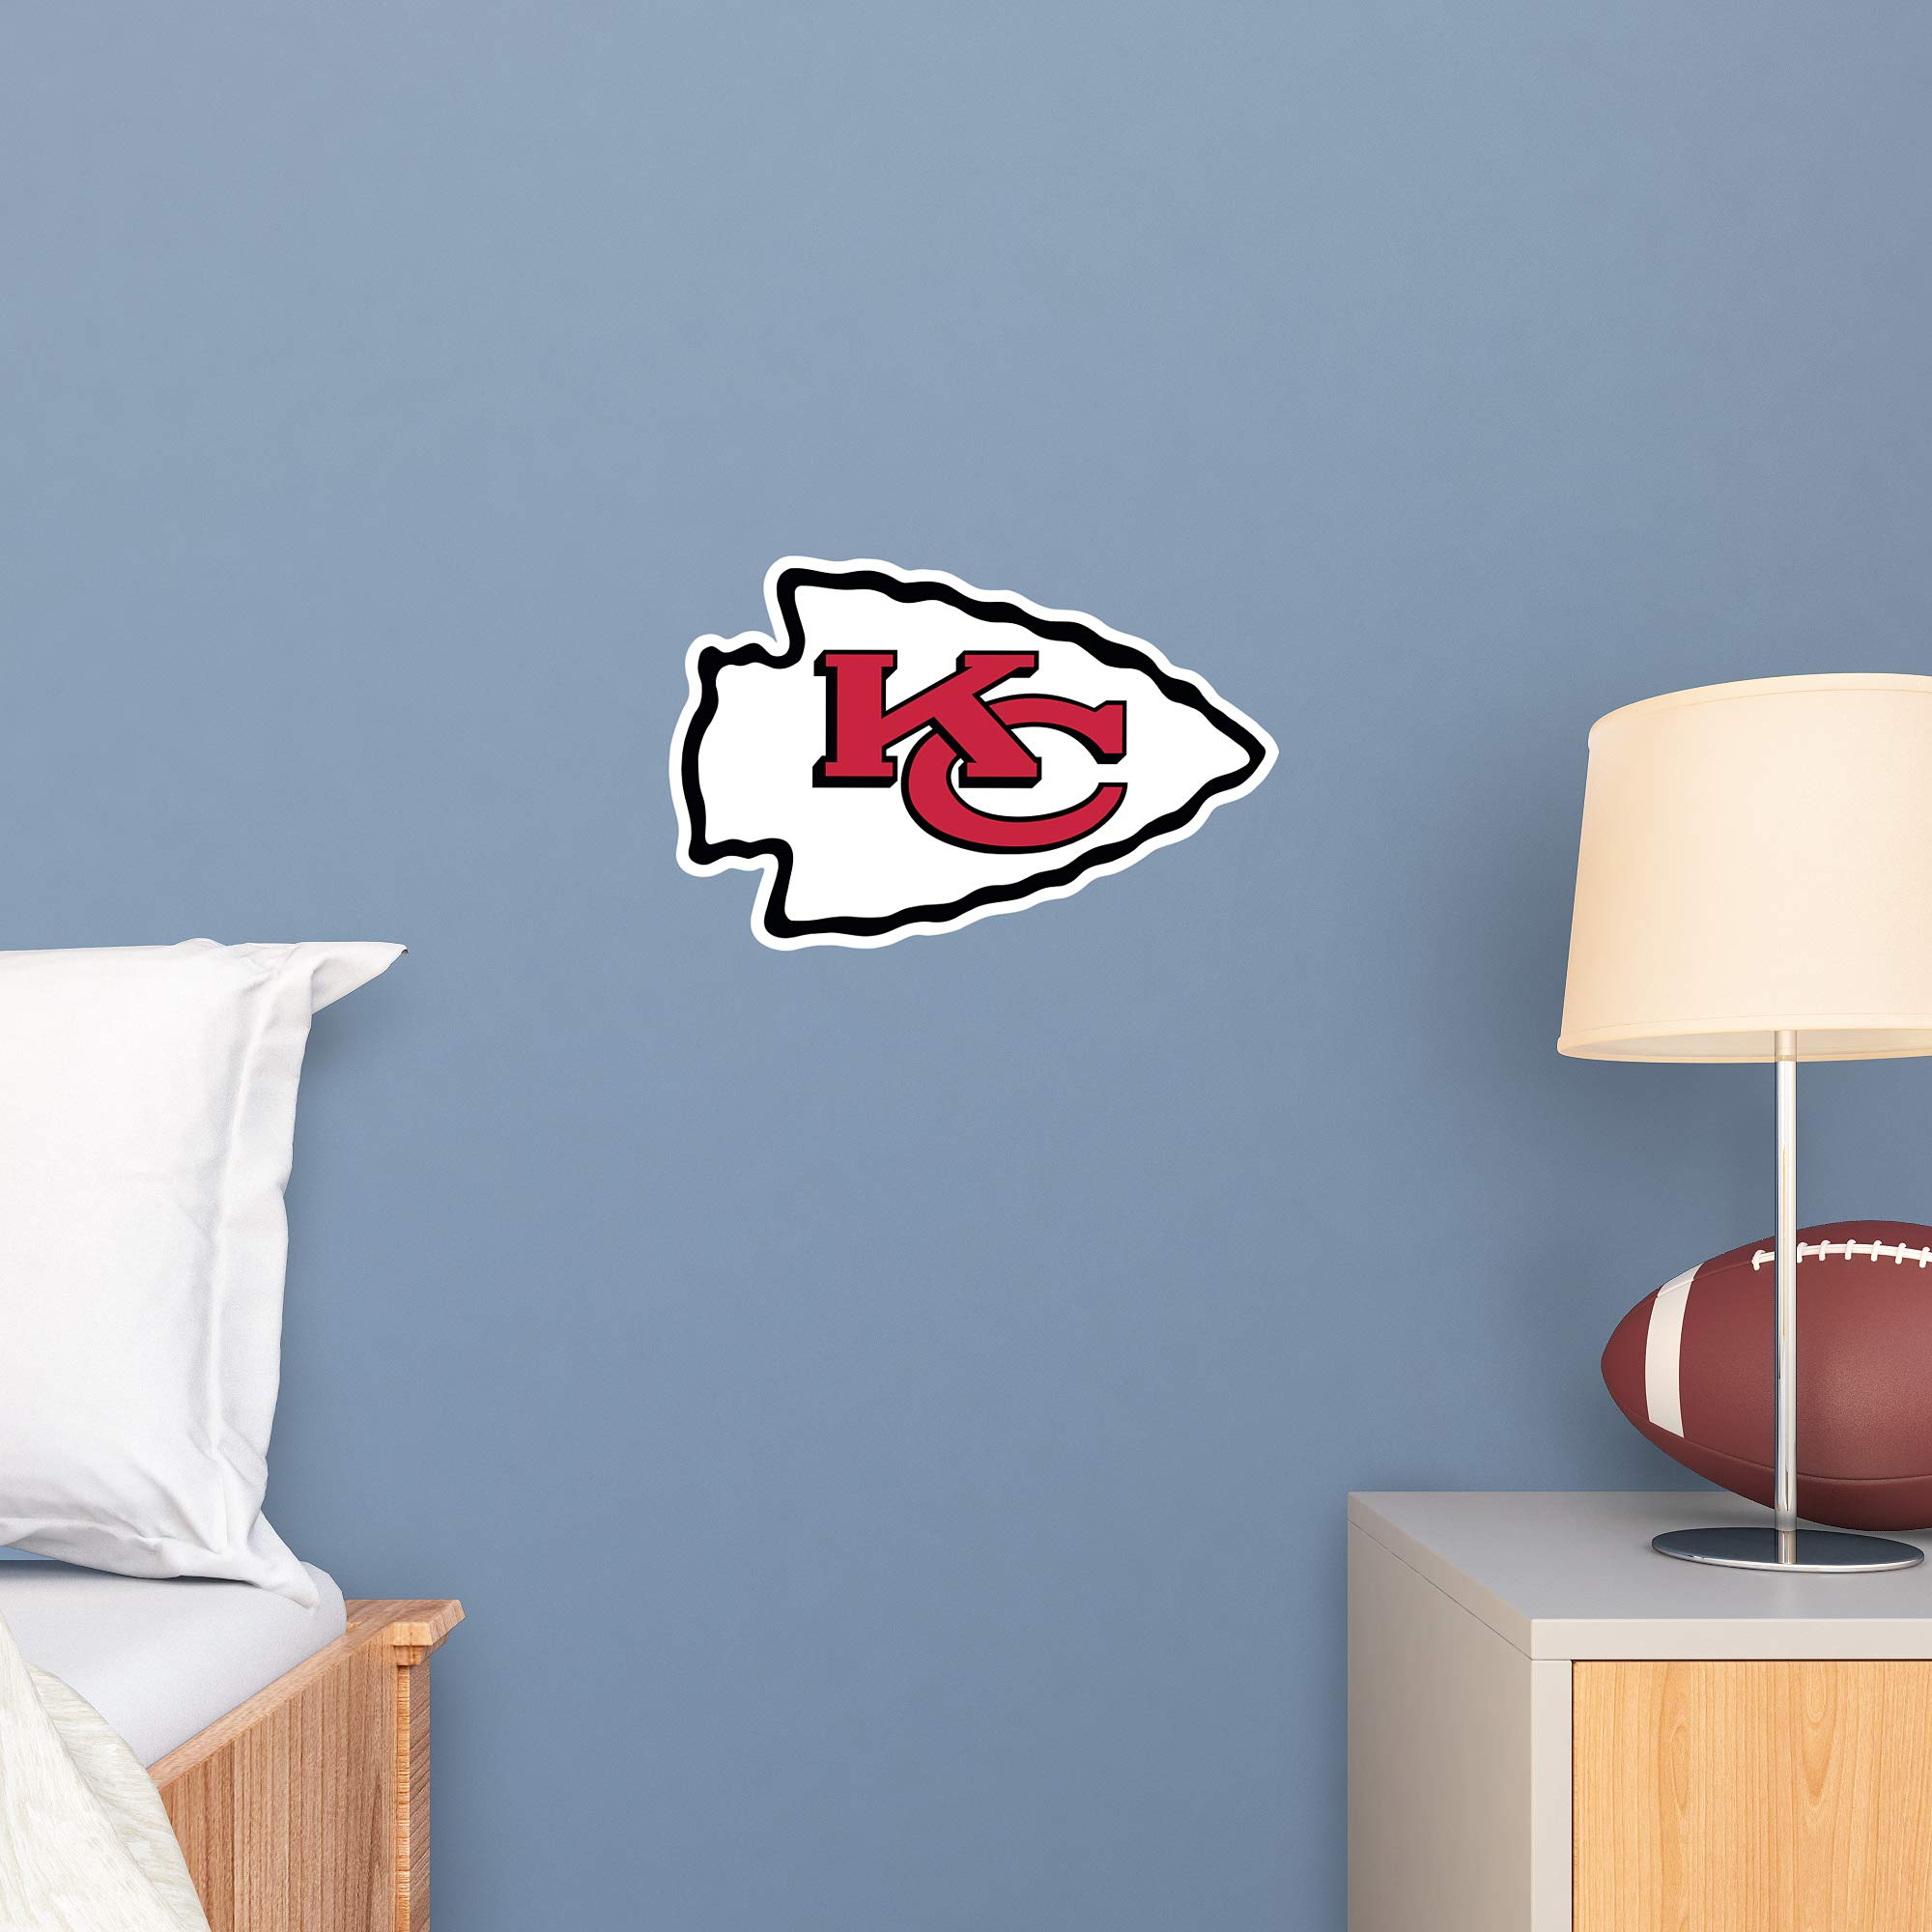 Fathead NFL Kansas City Chiefs - Logo Teammate- Officially Licensed Removable Wall Decal, Multicolor, Big - 89-03356 by FATHEAD